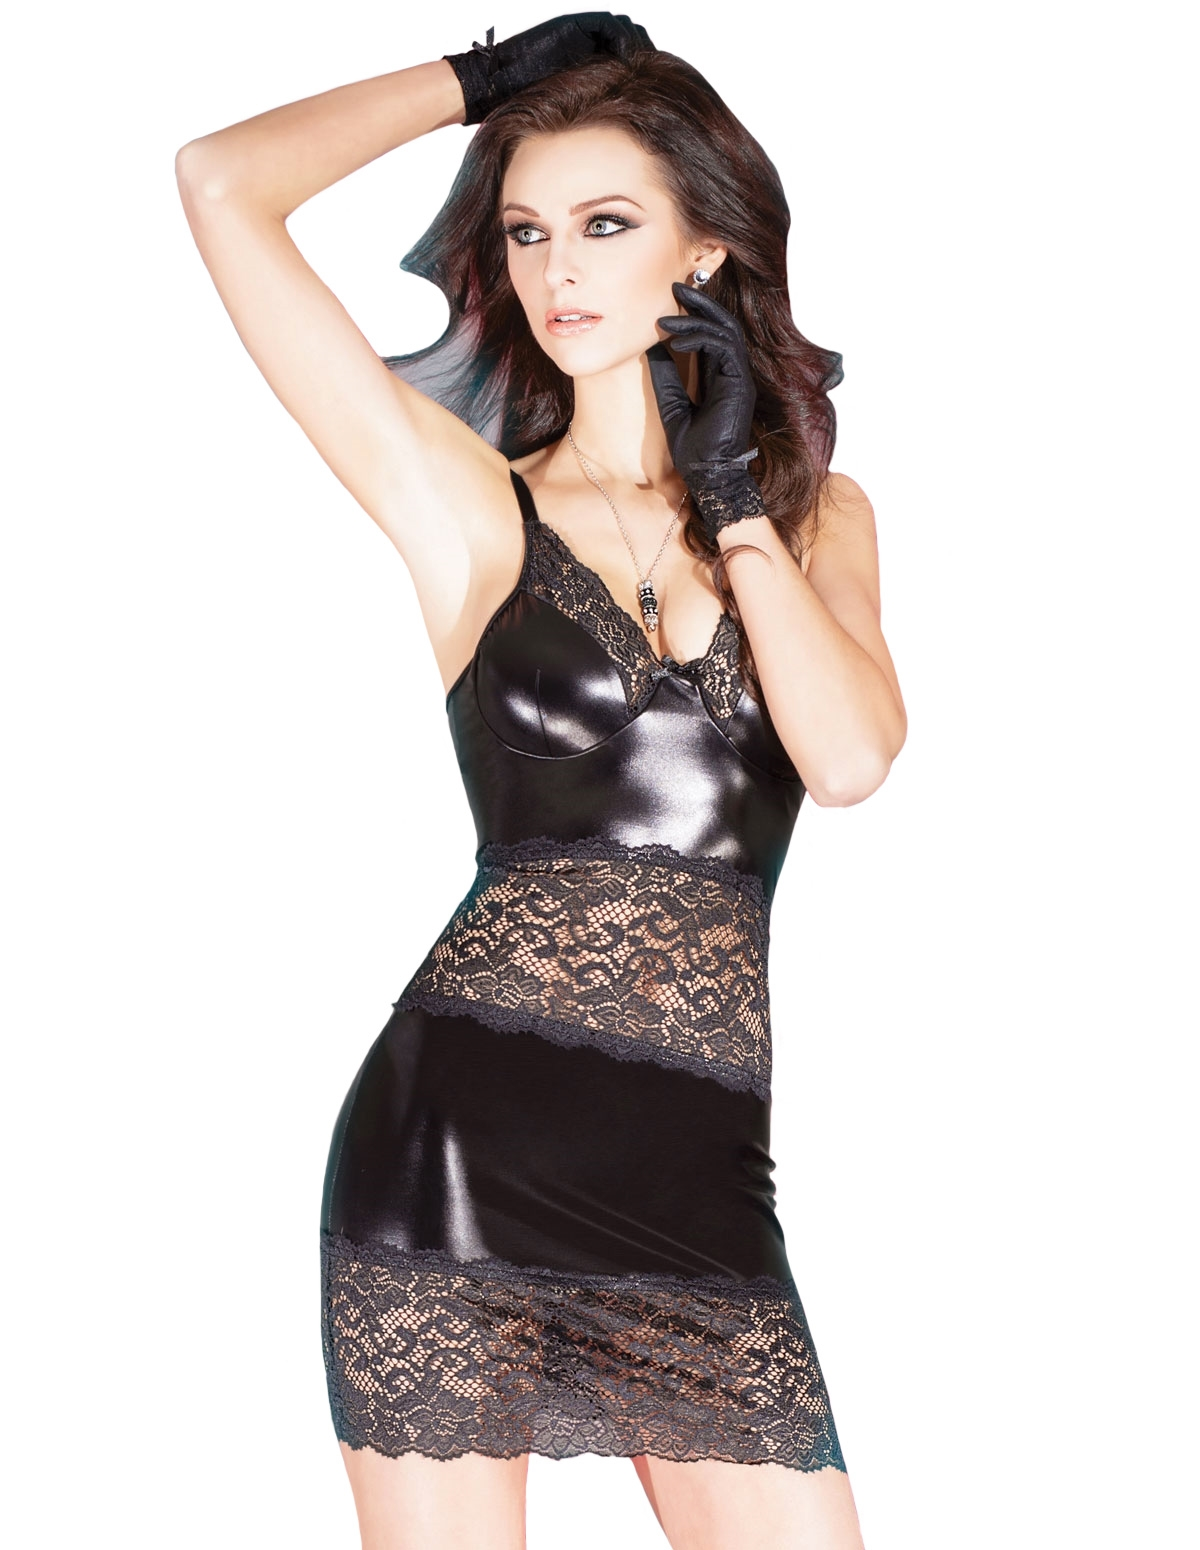 Lace Wet Look Dress